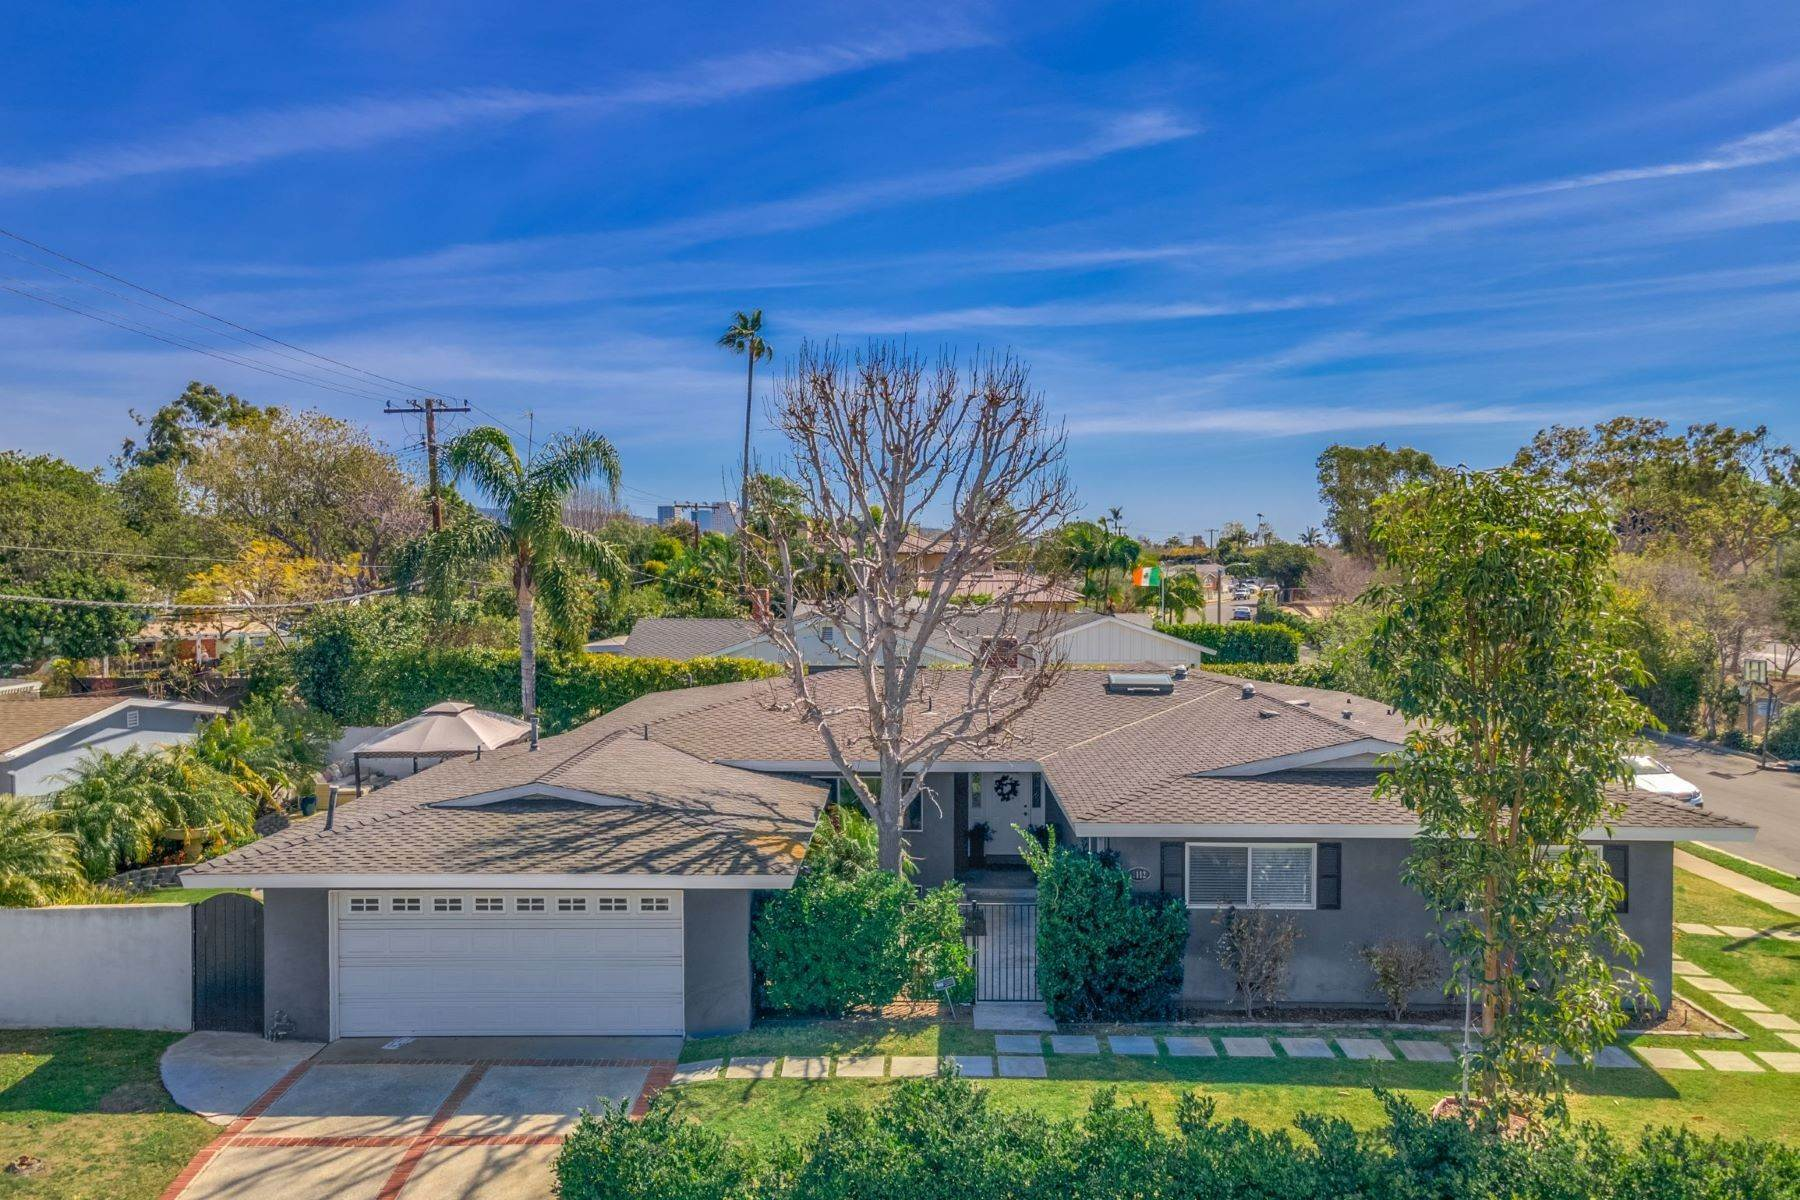 Single Family Homes for Sale at 2112 Dover Drive, Newport Beach, CA 92660 2112 Dover Drive Newport Beach, California 92660 United States